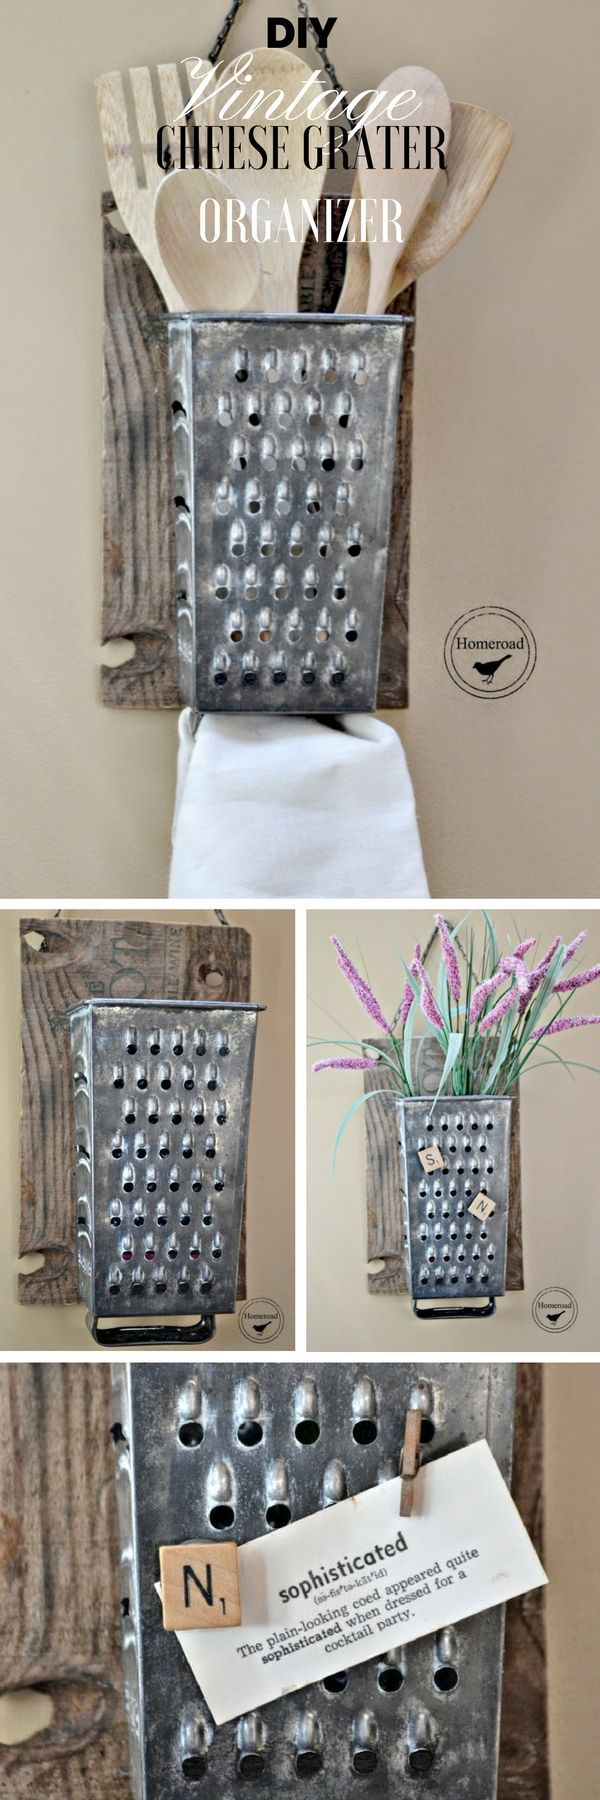 15 organization diys that will make your kitchen pretty diy crafts homediy home decor - Home Decor Diy